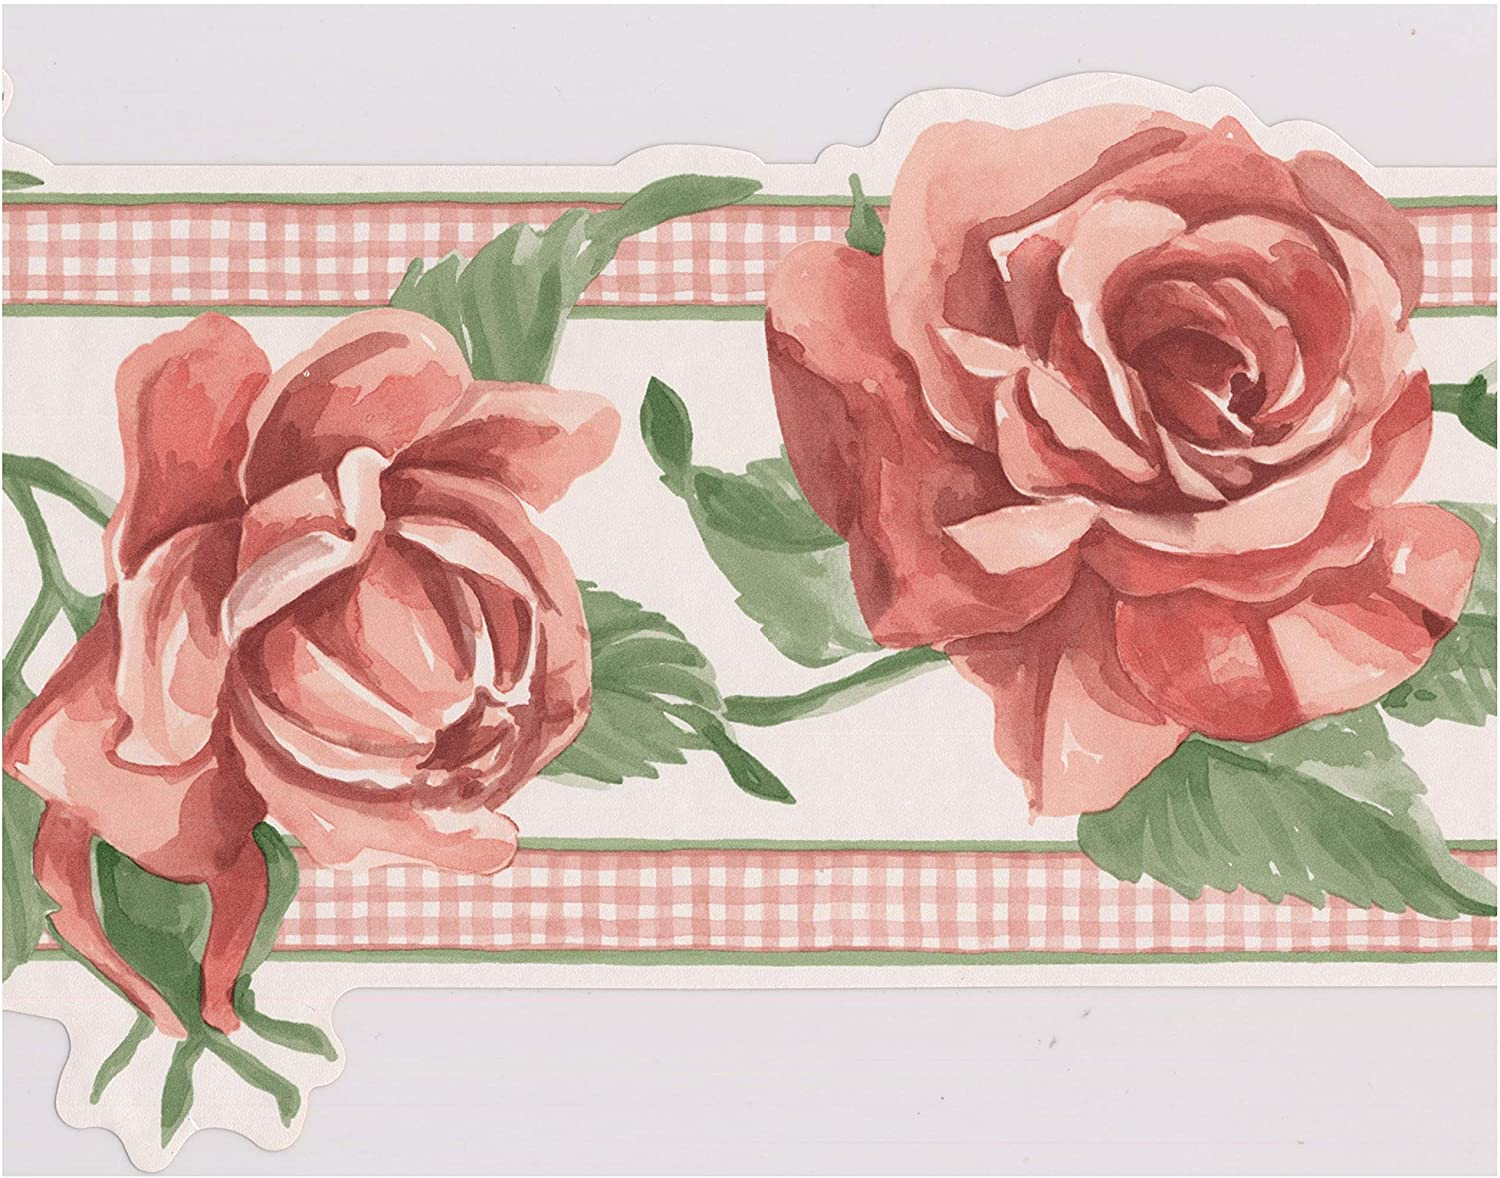 Blooming Pink Red Roses On Vine Floral Wallpaper Border Retro